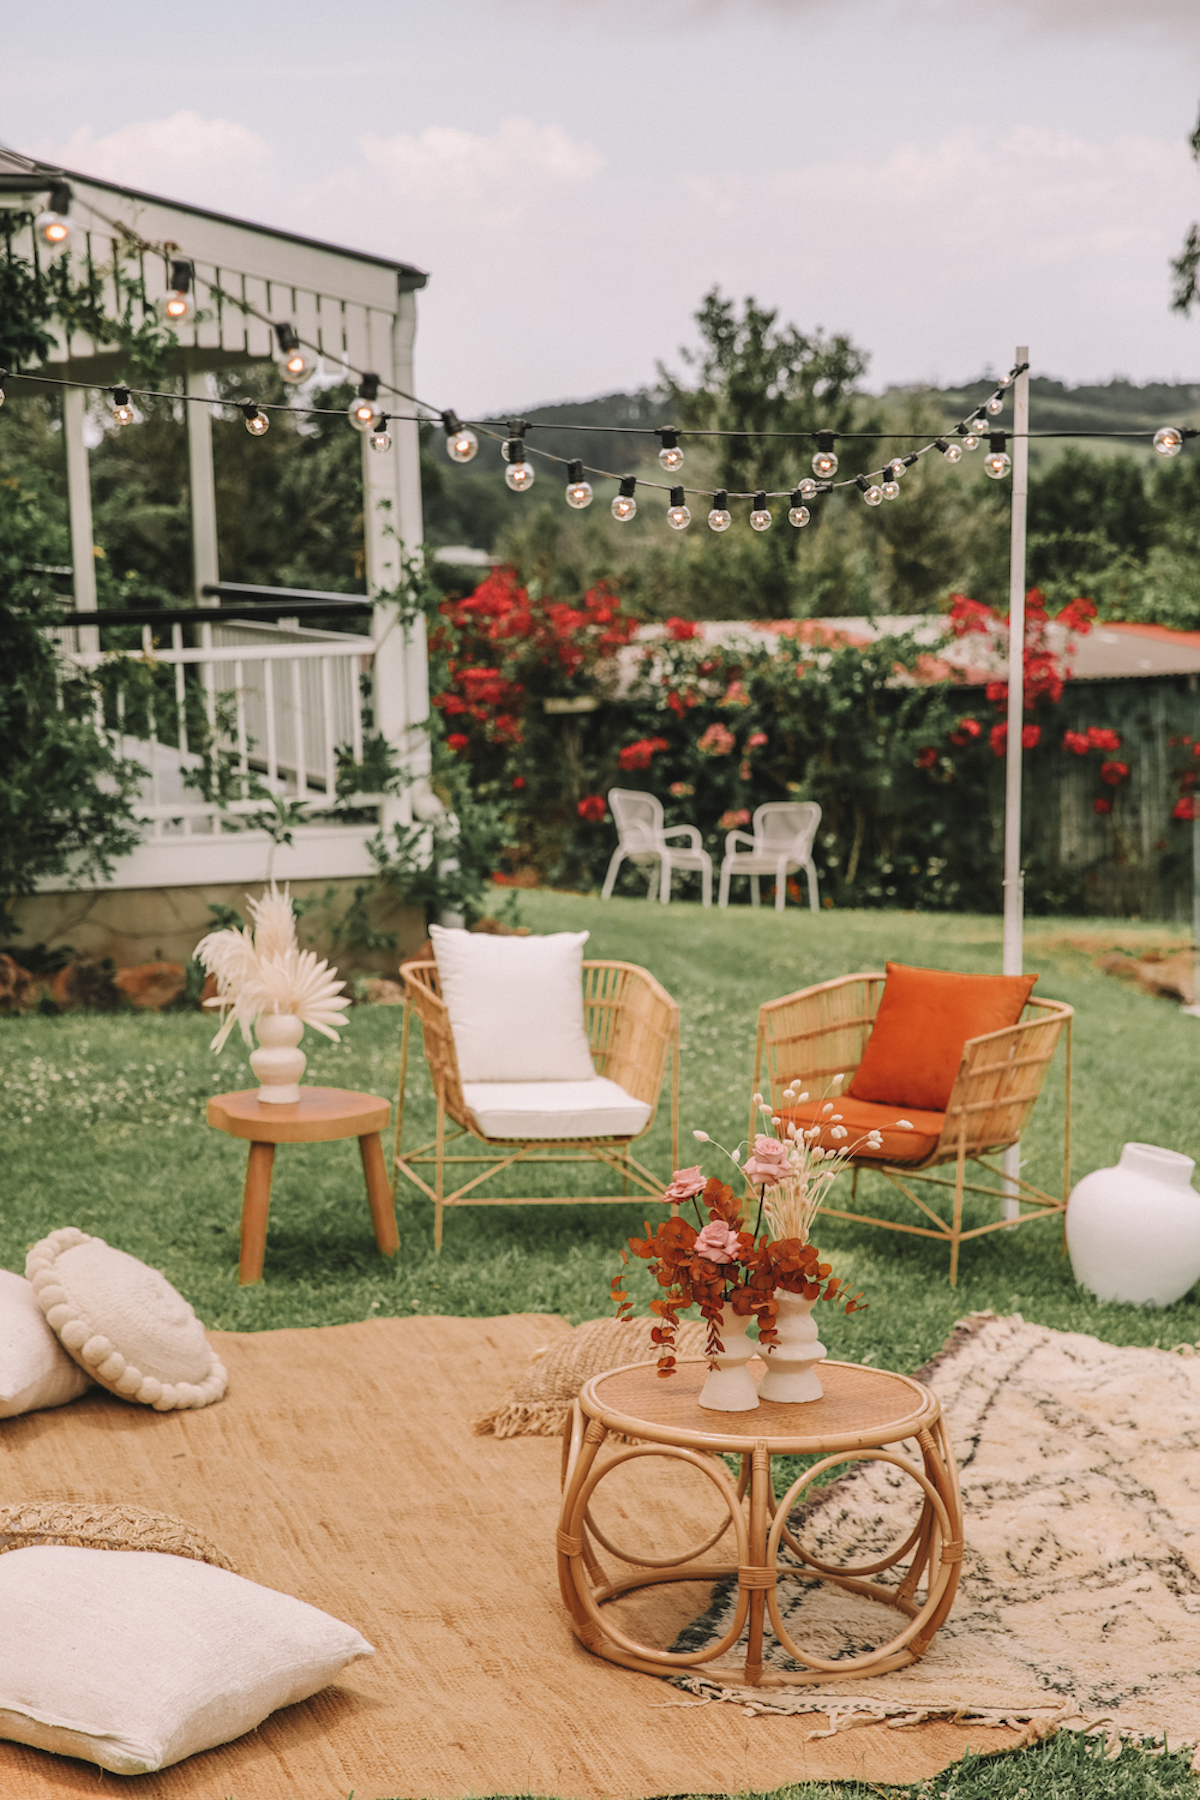 Byron Bay Wedding Styling Inspiration Autumnal Tones8.jpg